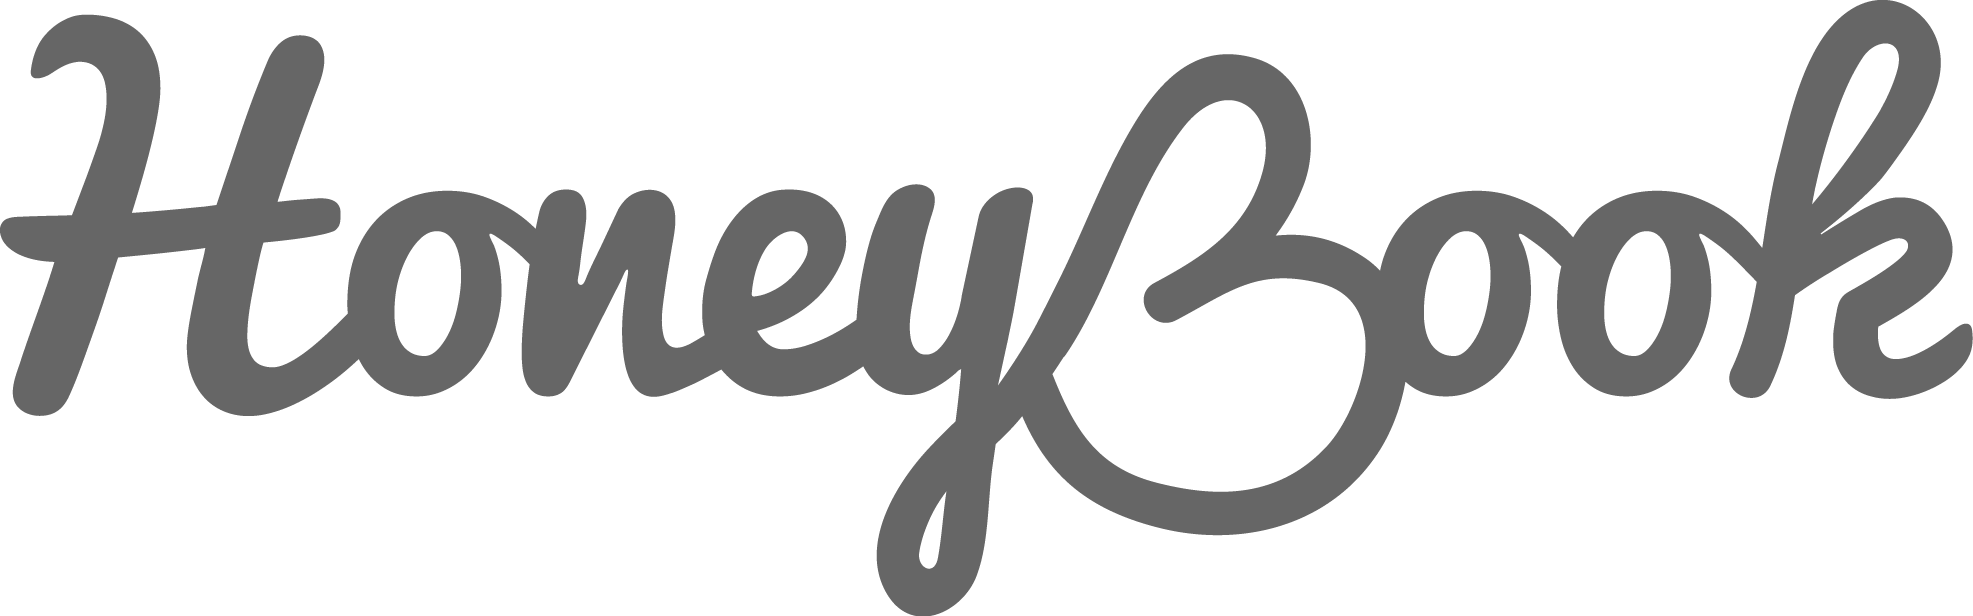 HoneyBook_logo